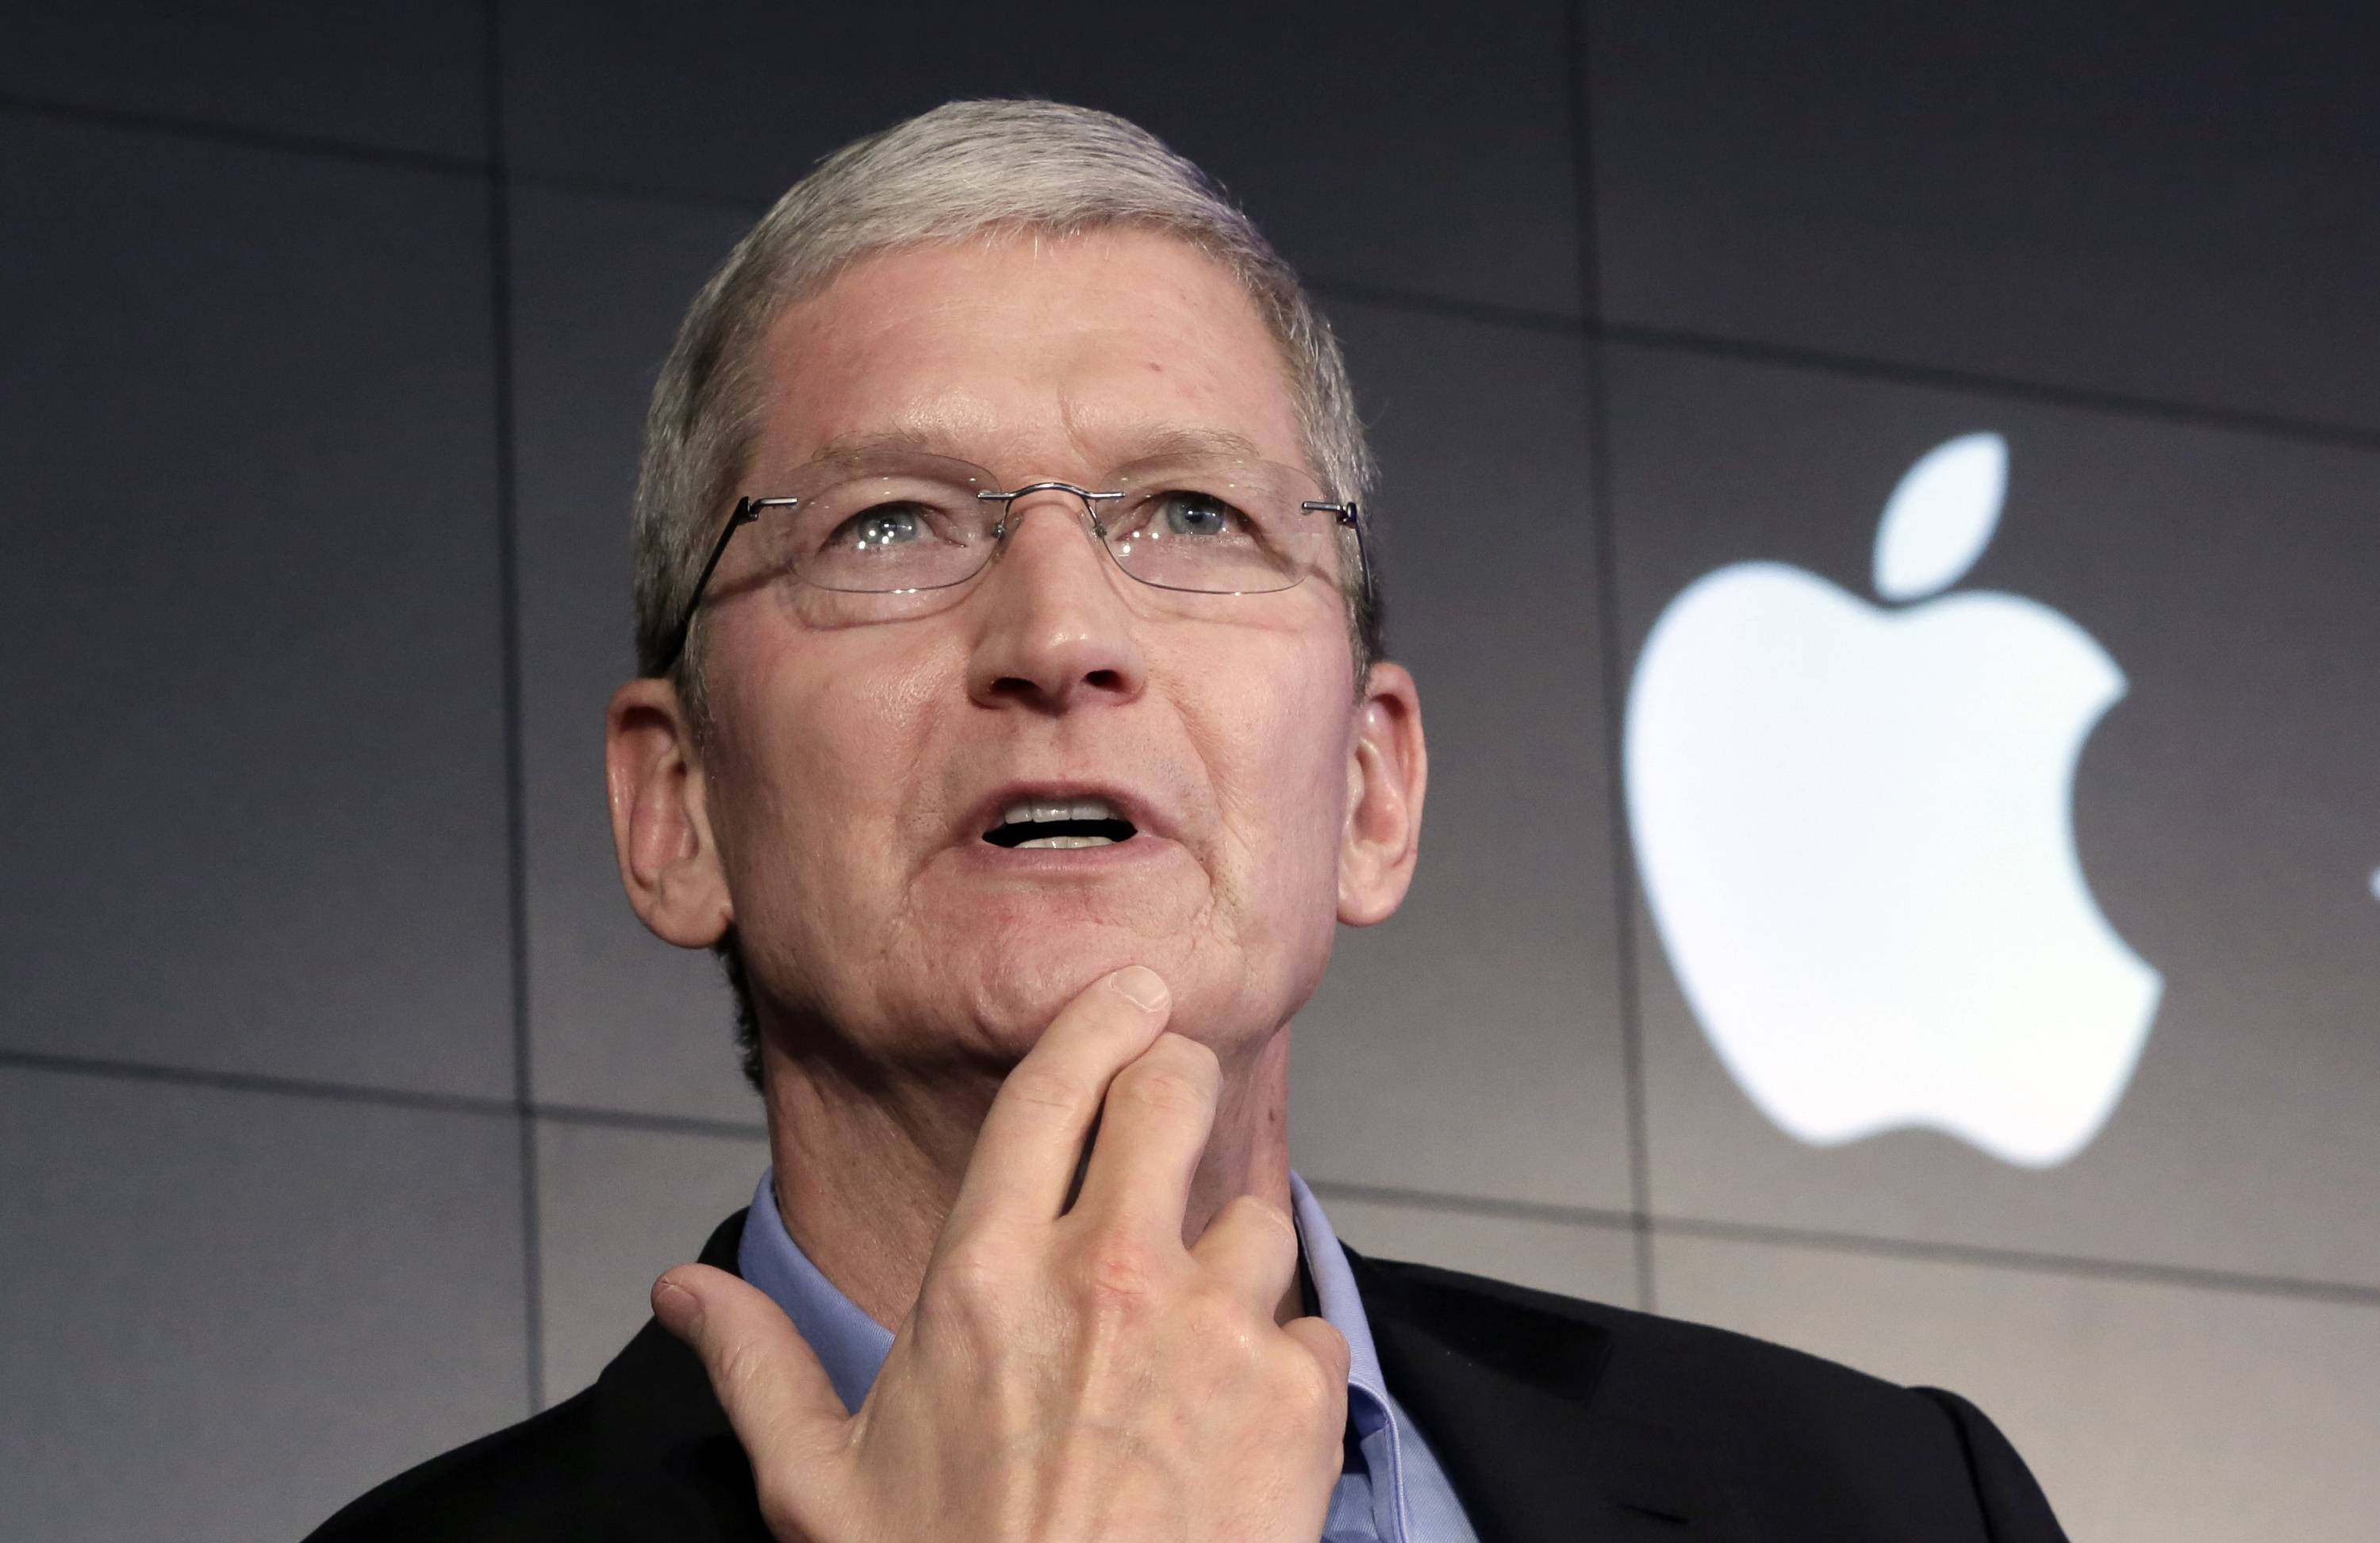 Apple Inc. will cut back on hiring for some divisions after selling fewer iPhones than expected and missing its revenue forecast for the holiday quarter, according to people familiar with the matter.